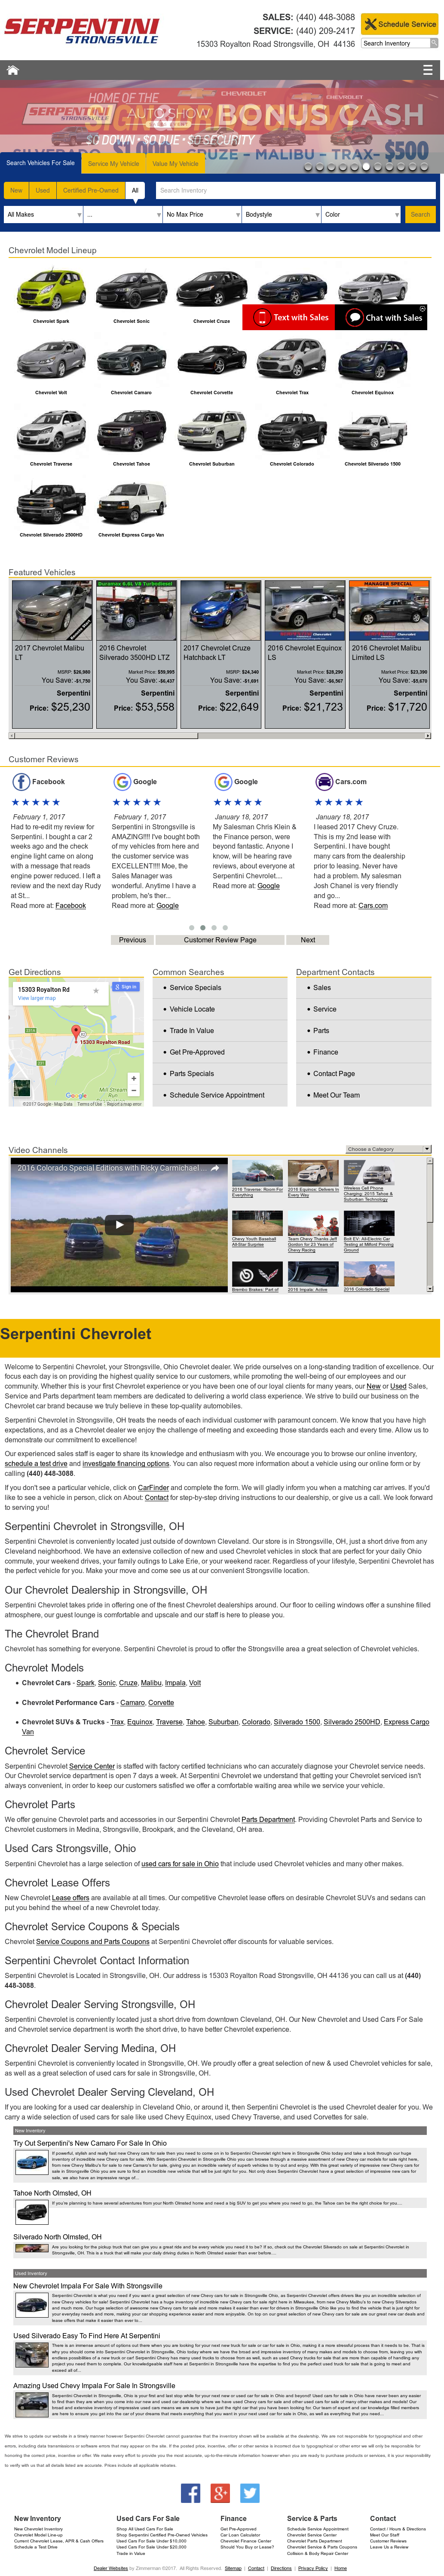 Serpentini Chevrolet Of Strongsville Competitors Revenue And